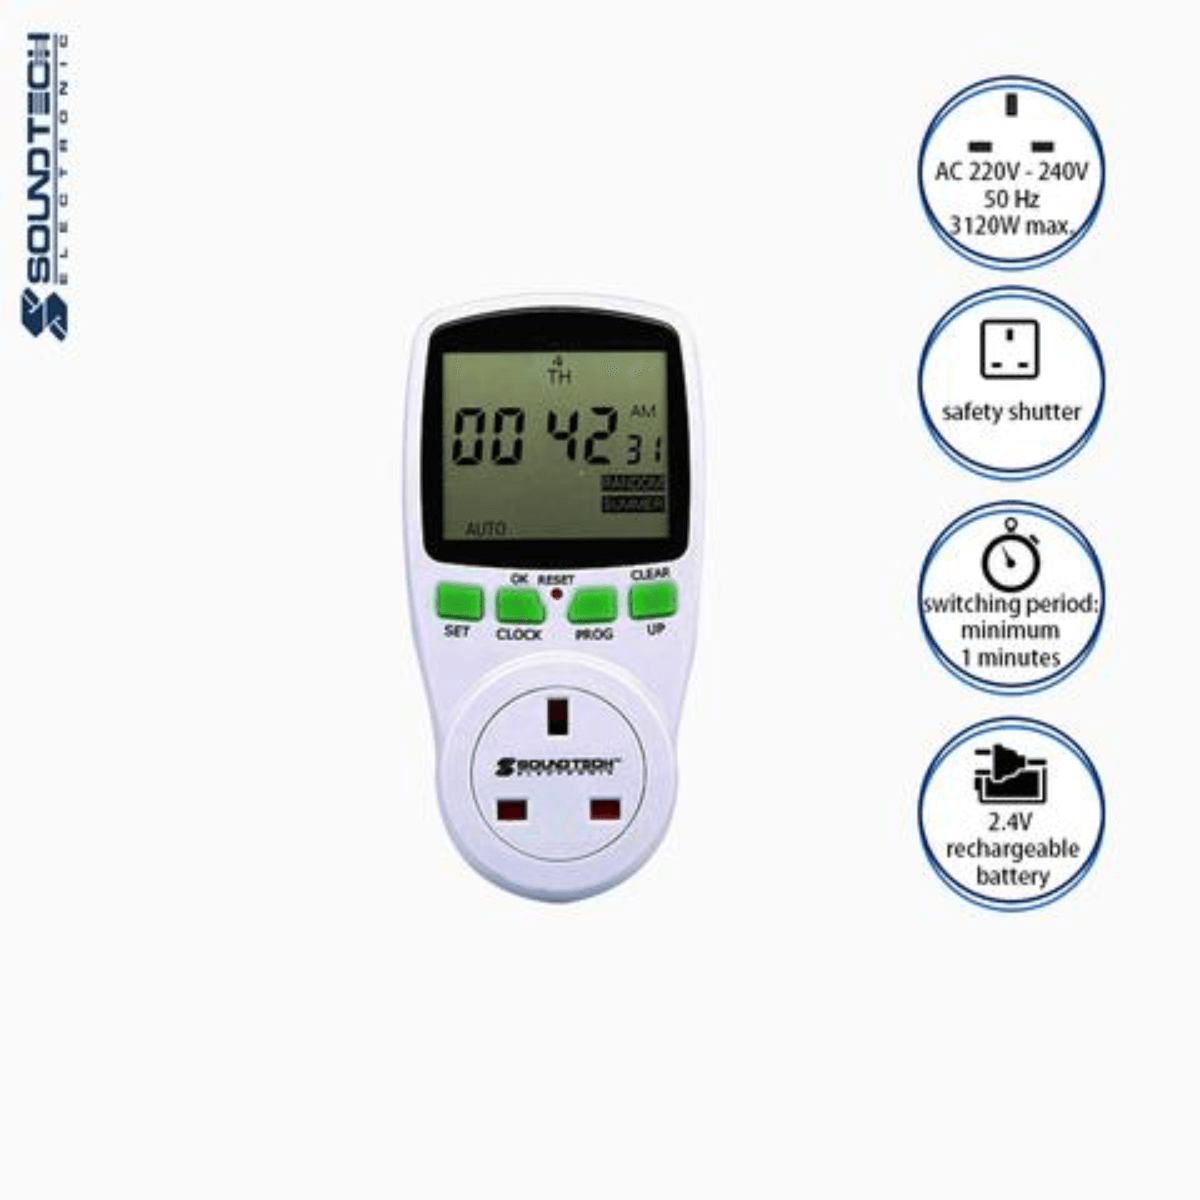 Soundteoh 13A Digital Timer DT-020